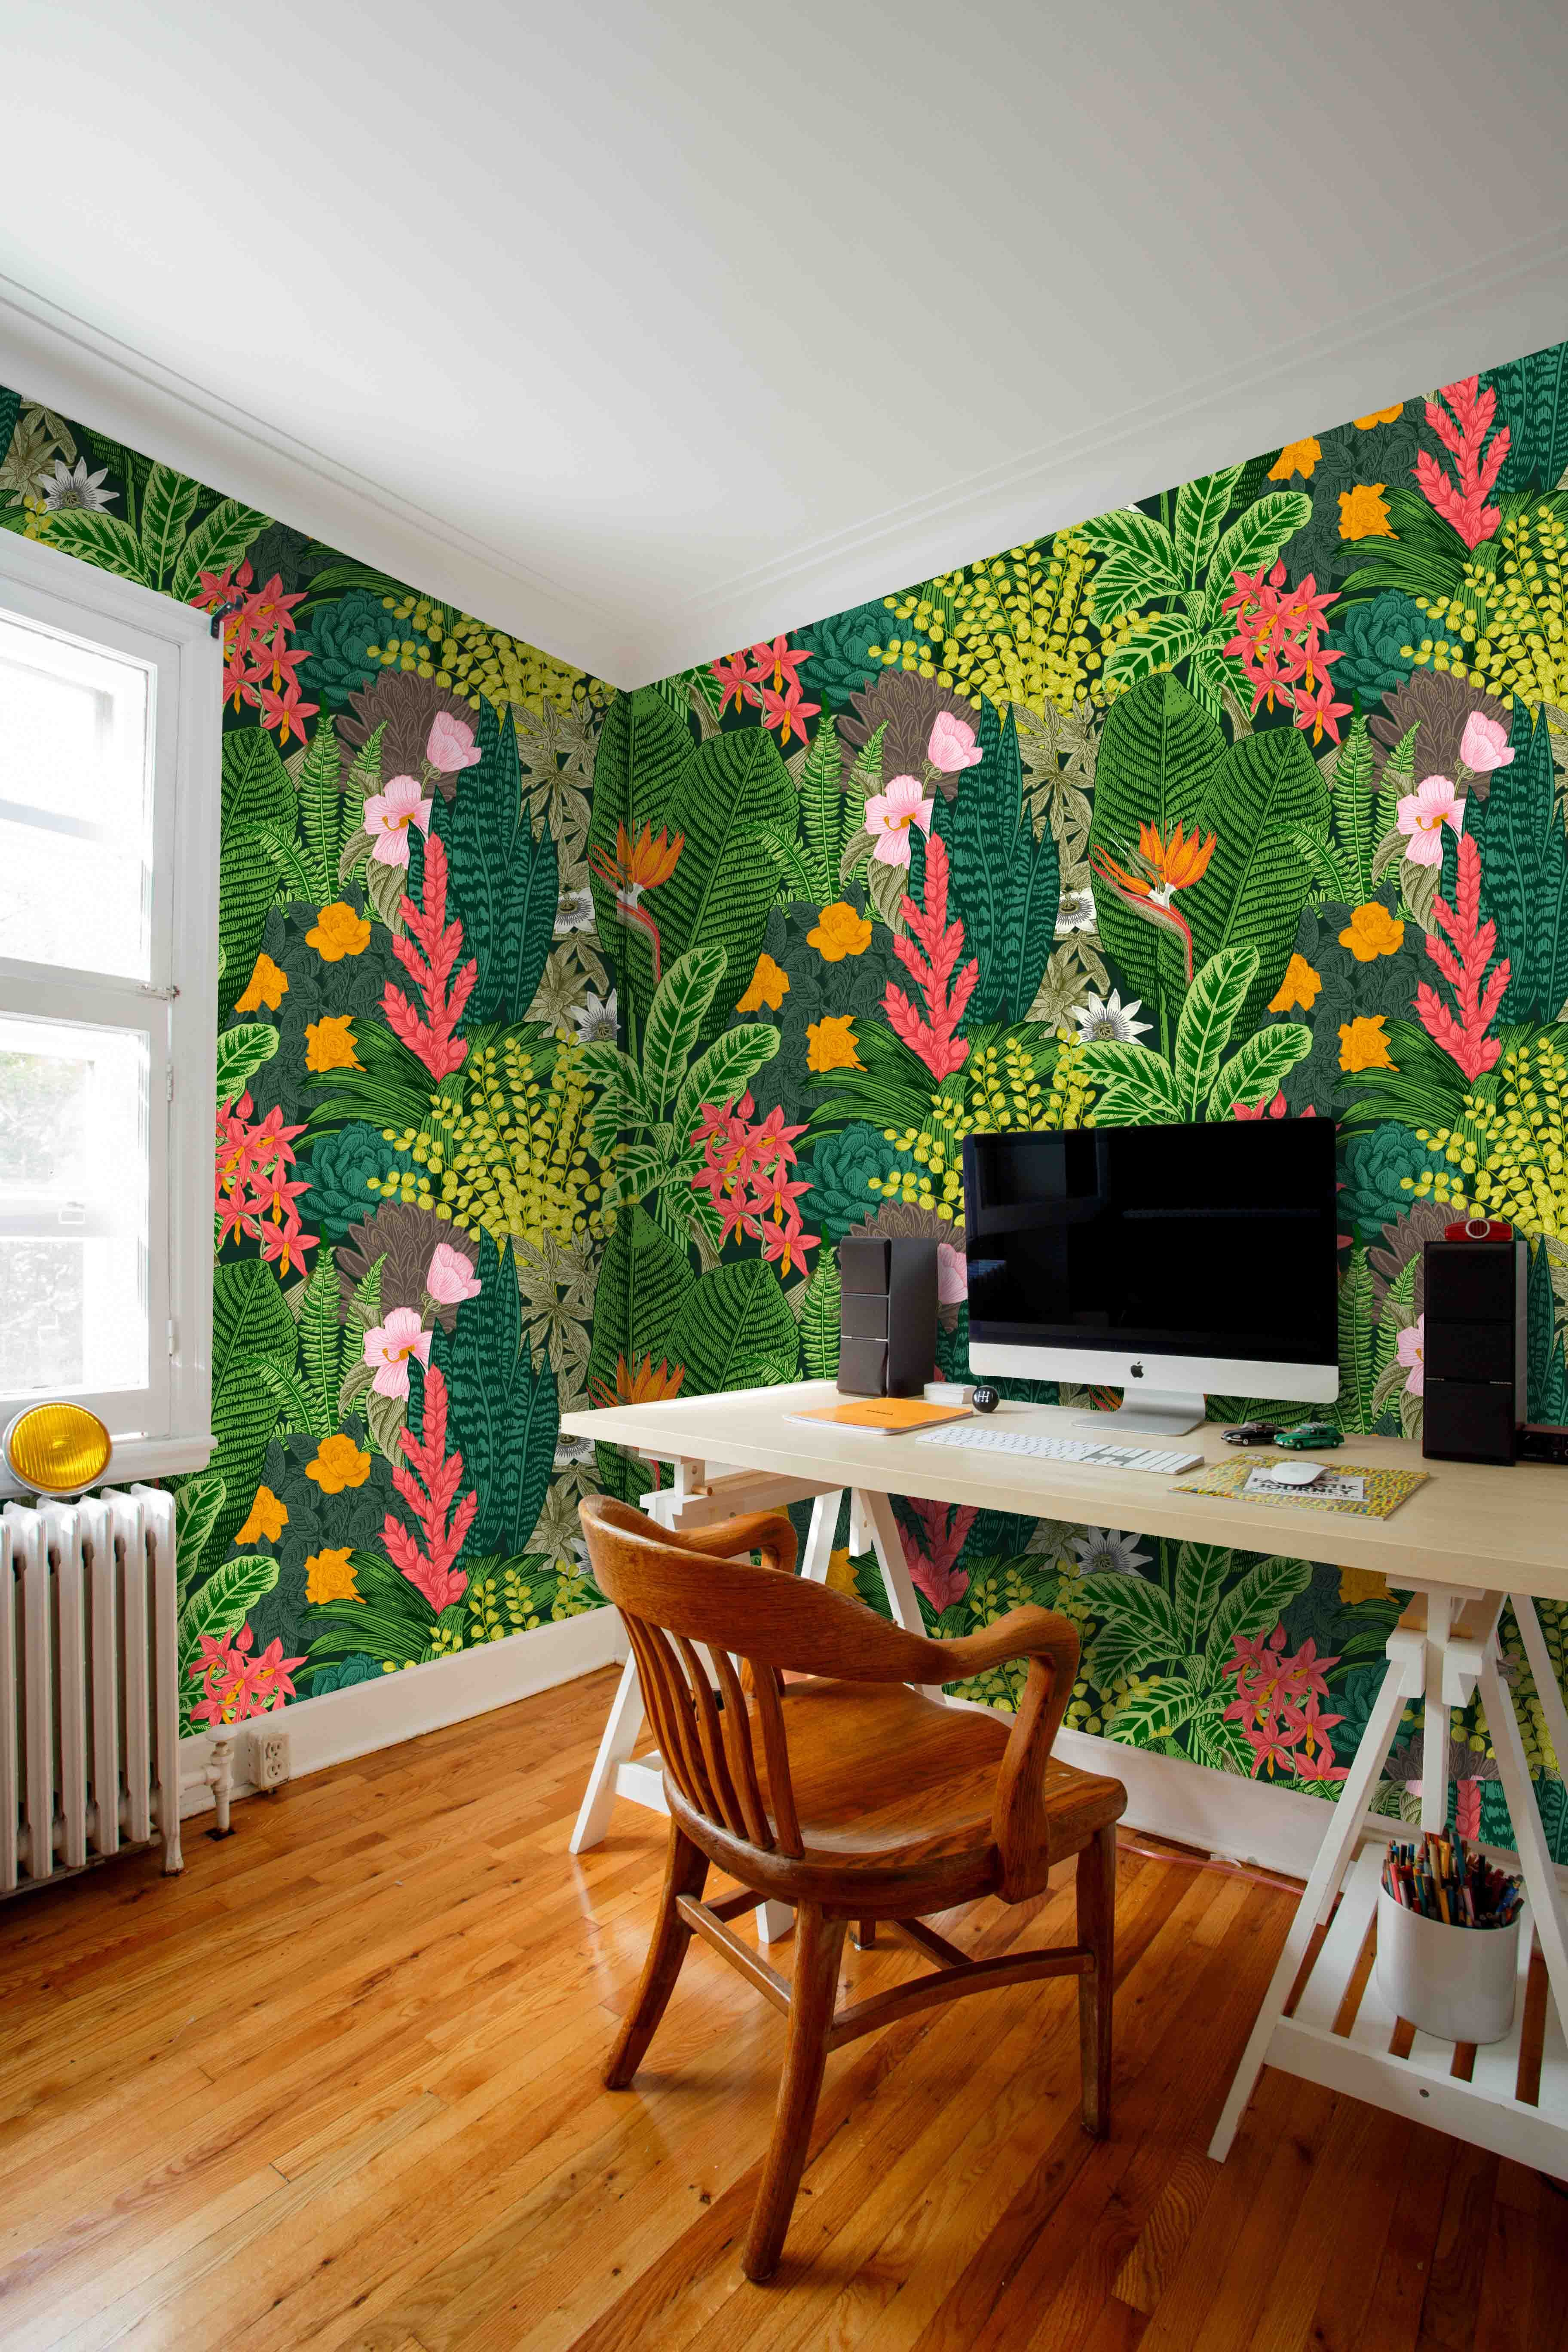 Tropical Theme Wallcovering Palms Mural Removable Self Etsy Wallpaper Tropical Home Wallpaper Removable Wallpaper How to measure how much wallpaper you